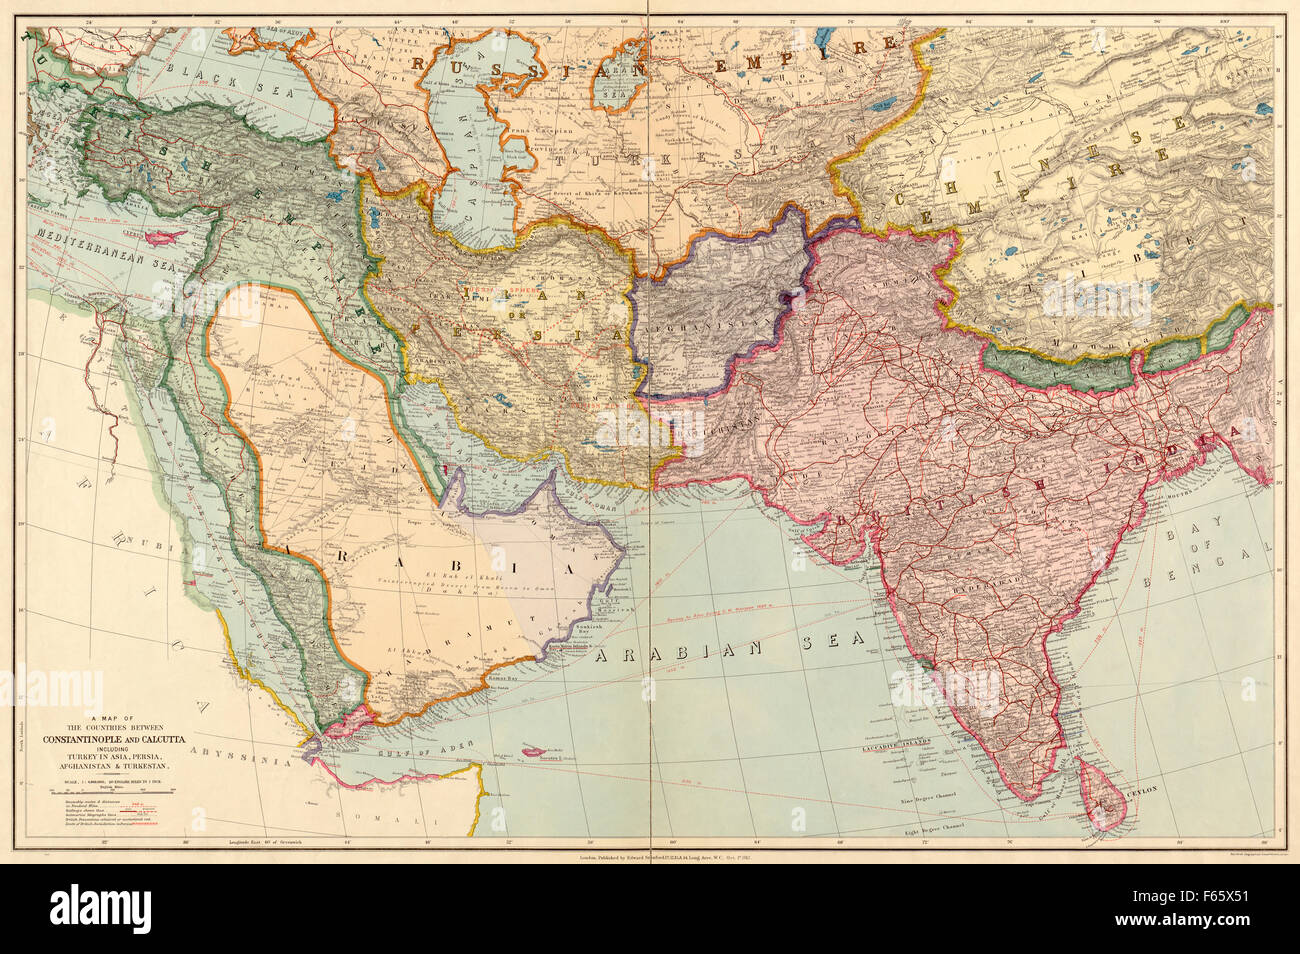 The countries between constantinople and calcutta including turkey constantinople and calcutta including turkey in asia persia afghanistan and turkestan middle east and indian subcontinent pre world war one map gumiabroncs Images